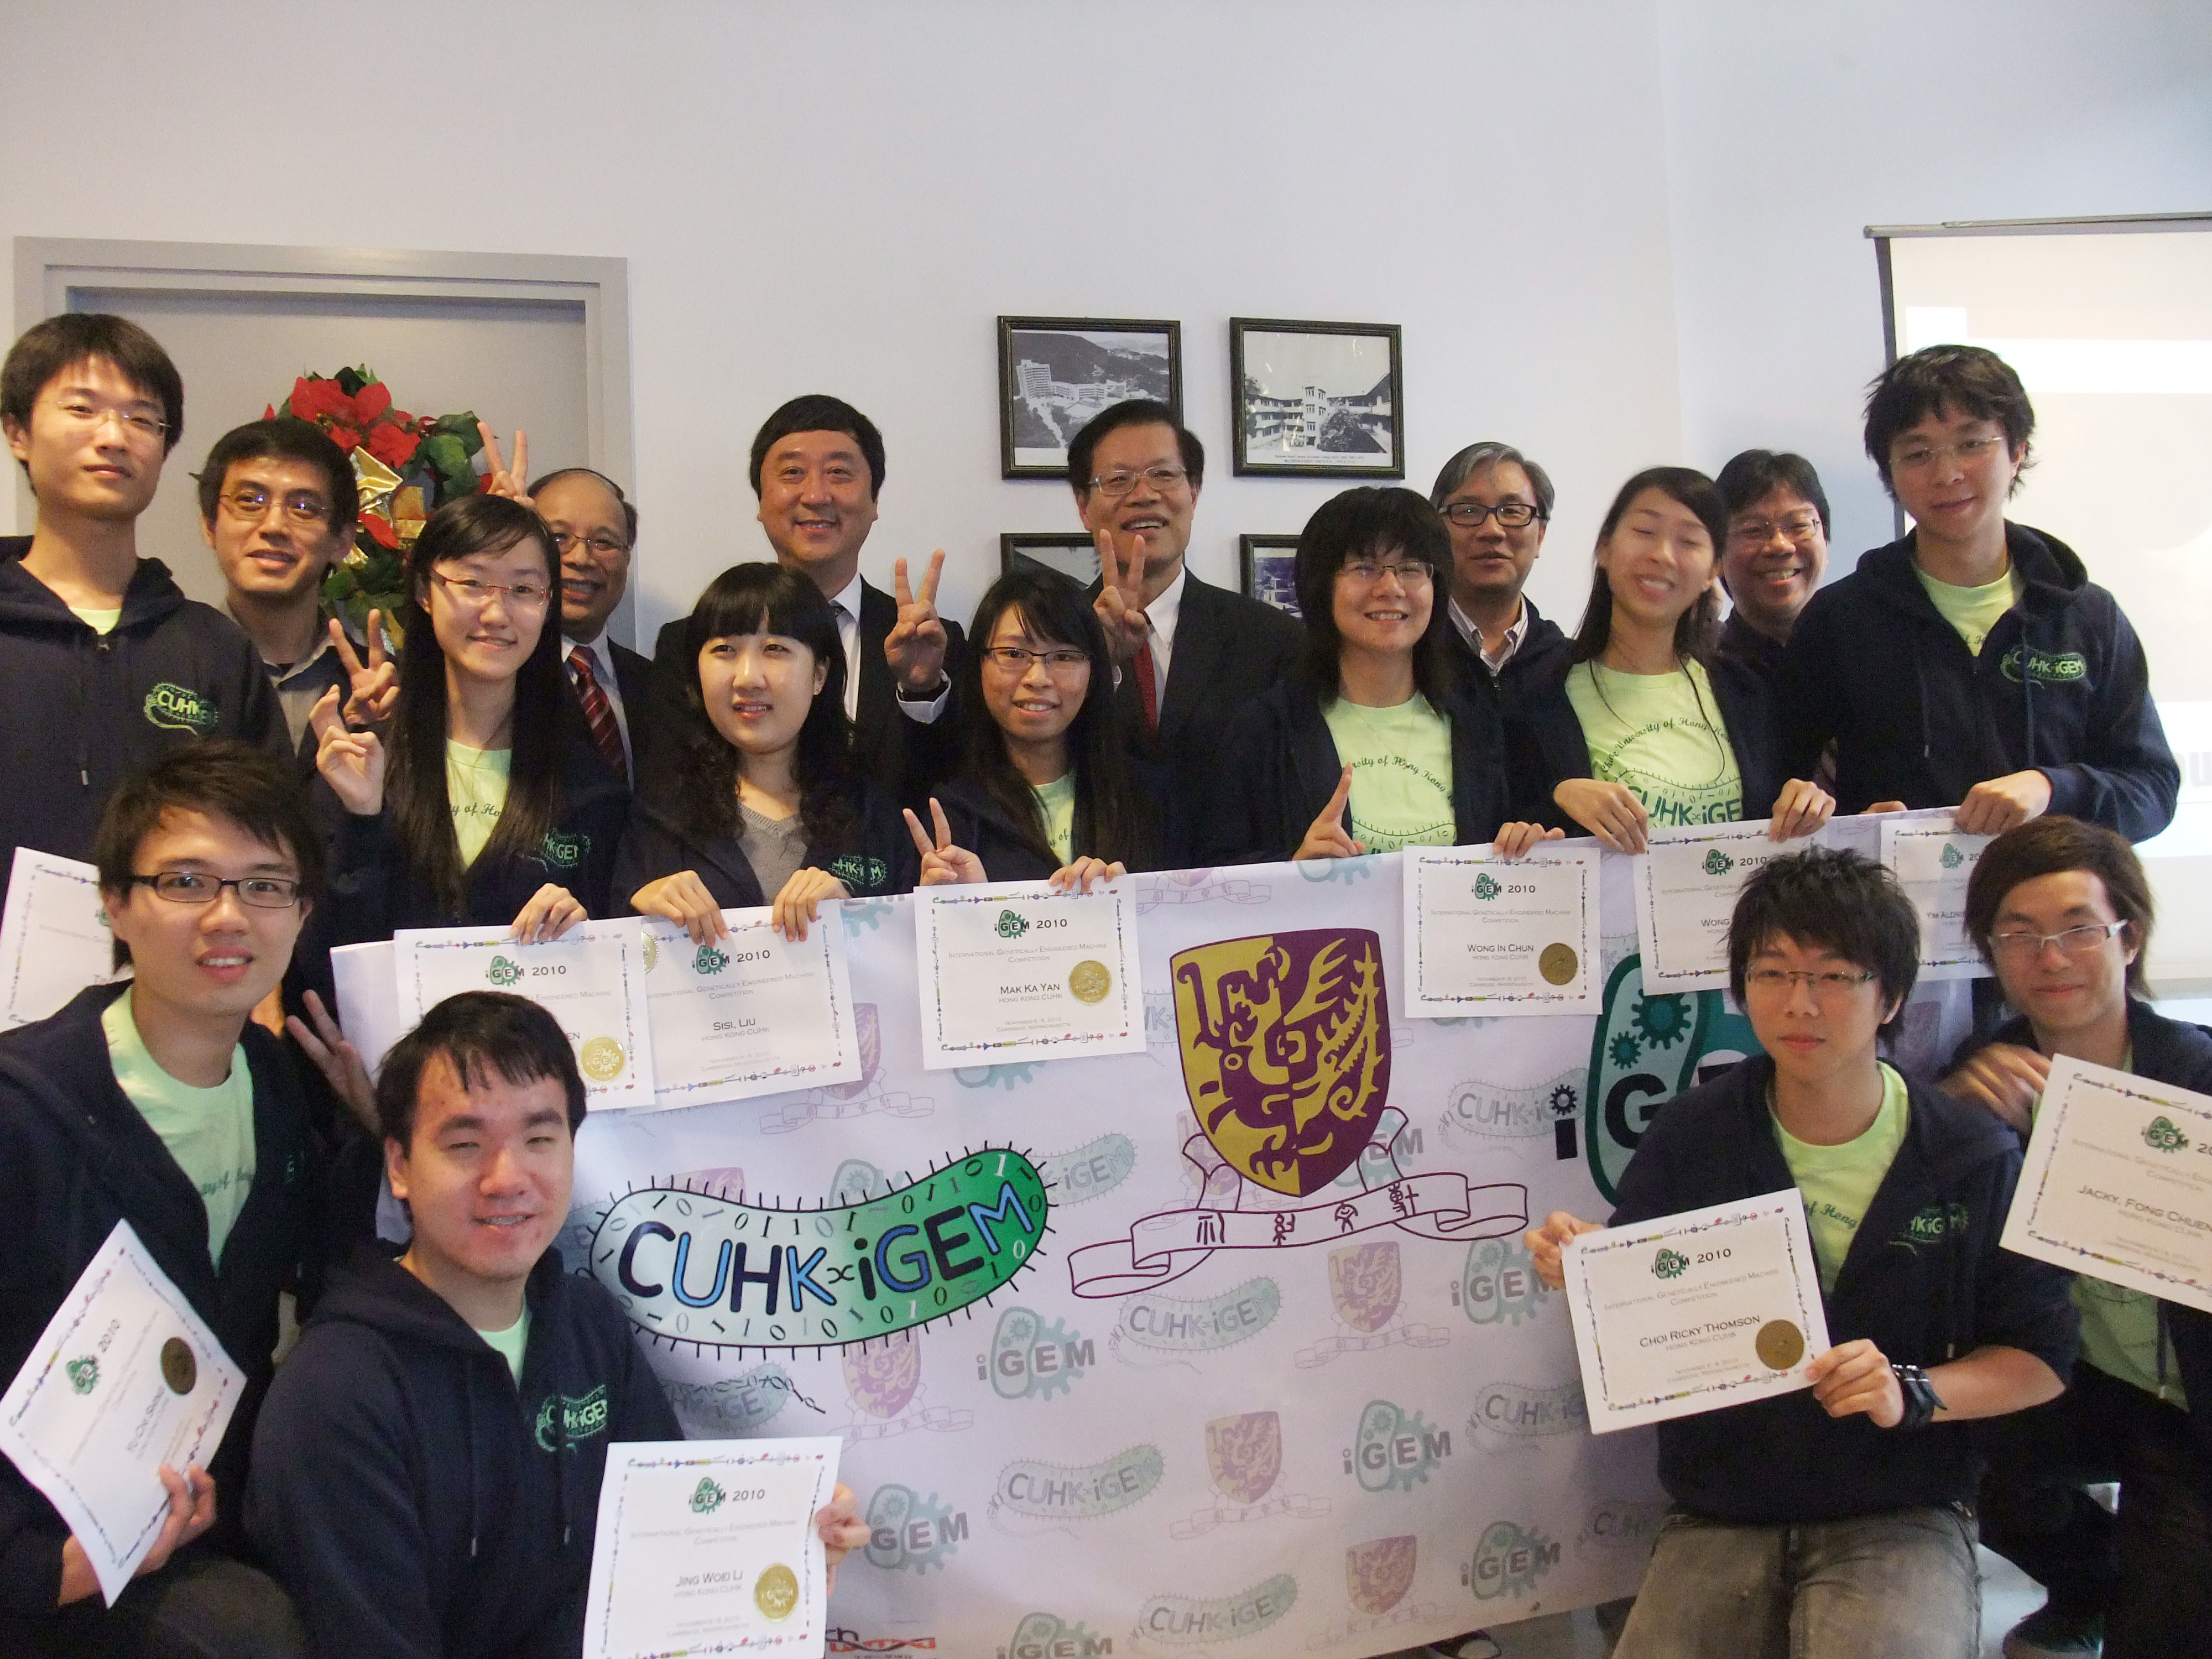 A group photo of Prof. Joseph Sung, CUHK Vice-Chancellor (4th left, back row), Prof Ng Cheuk-yiu , Dean of Science (5th left, back row), Prof. Chu Ka-hou, Acting Director, School of Life Sciences (3rd left, back row) and the award-winning team